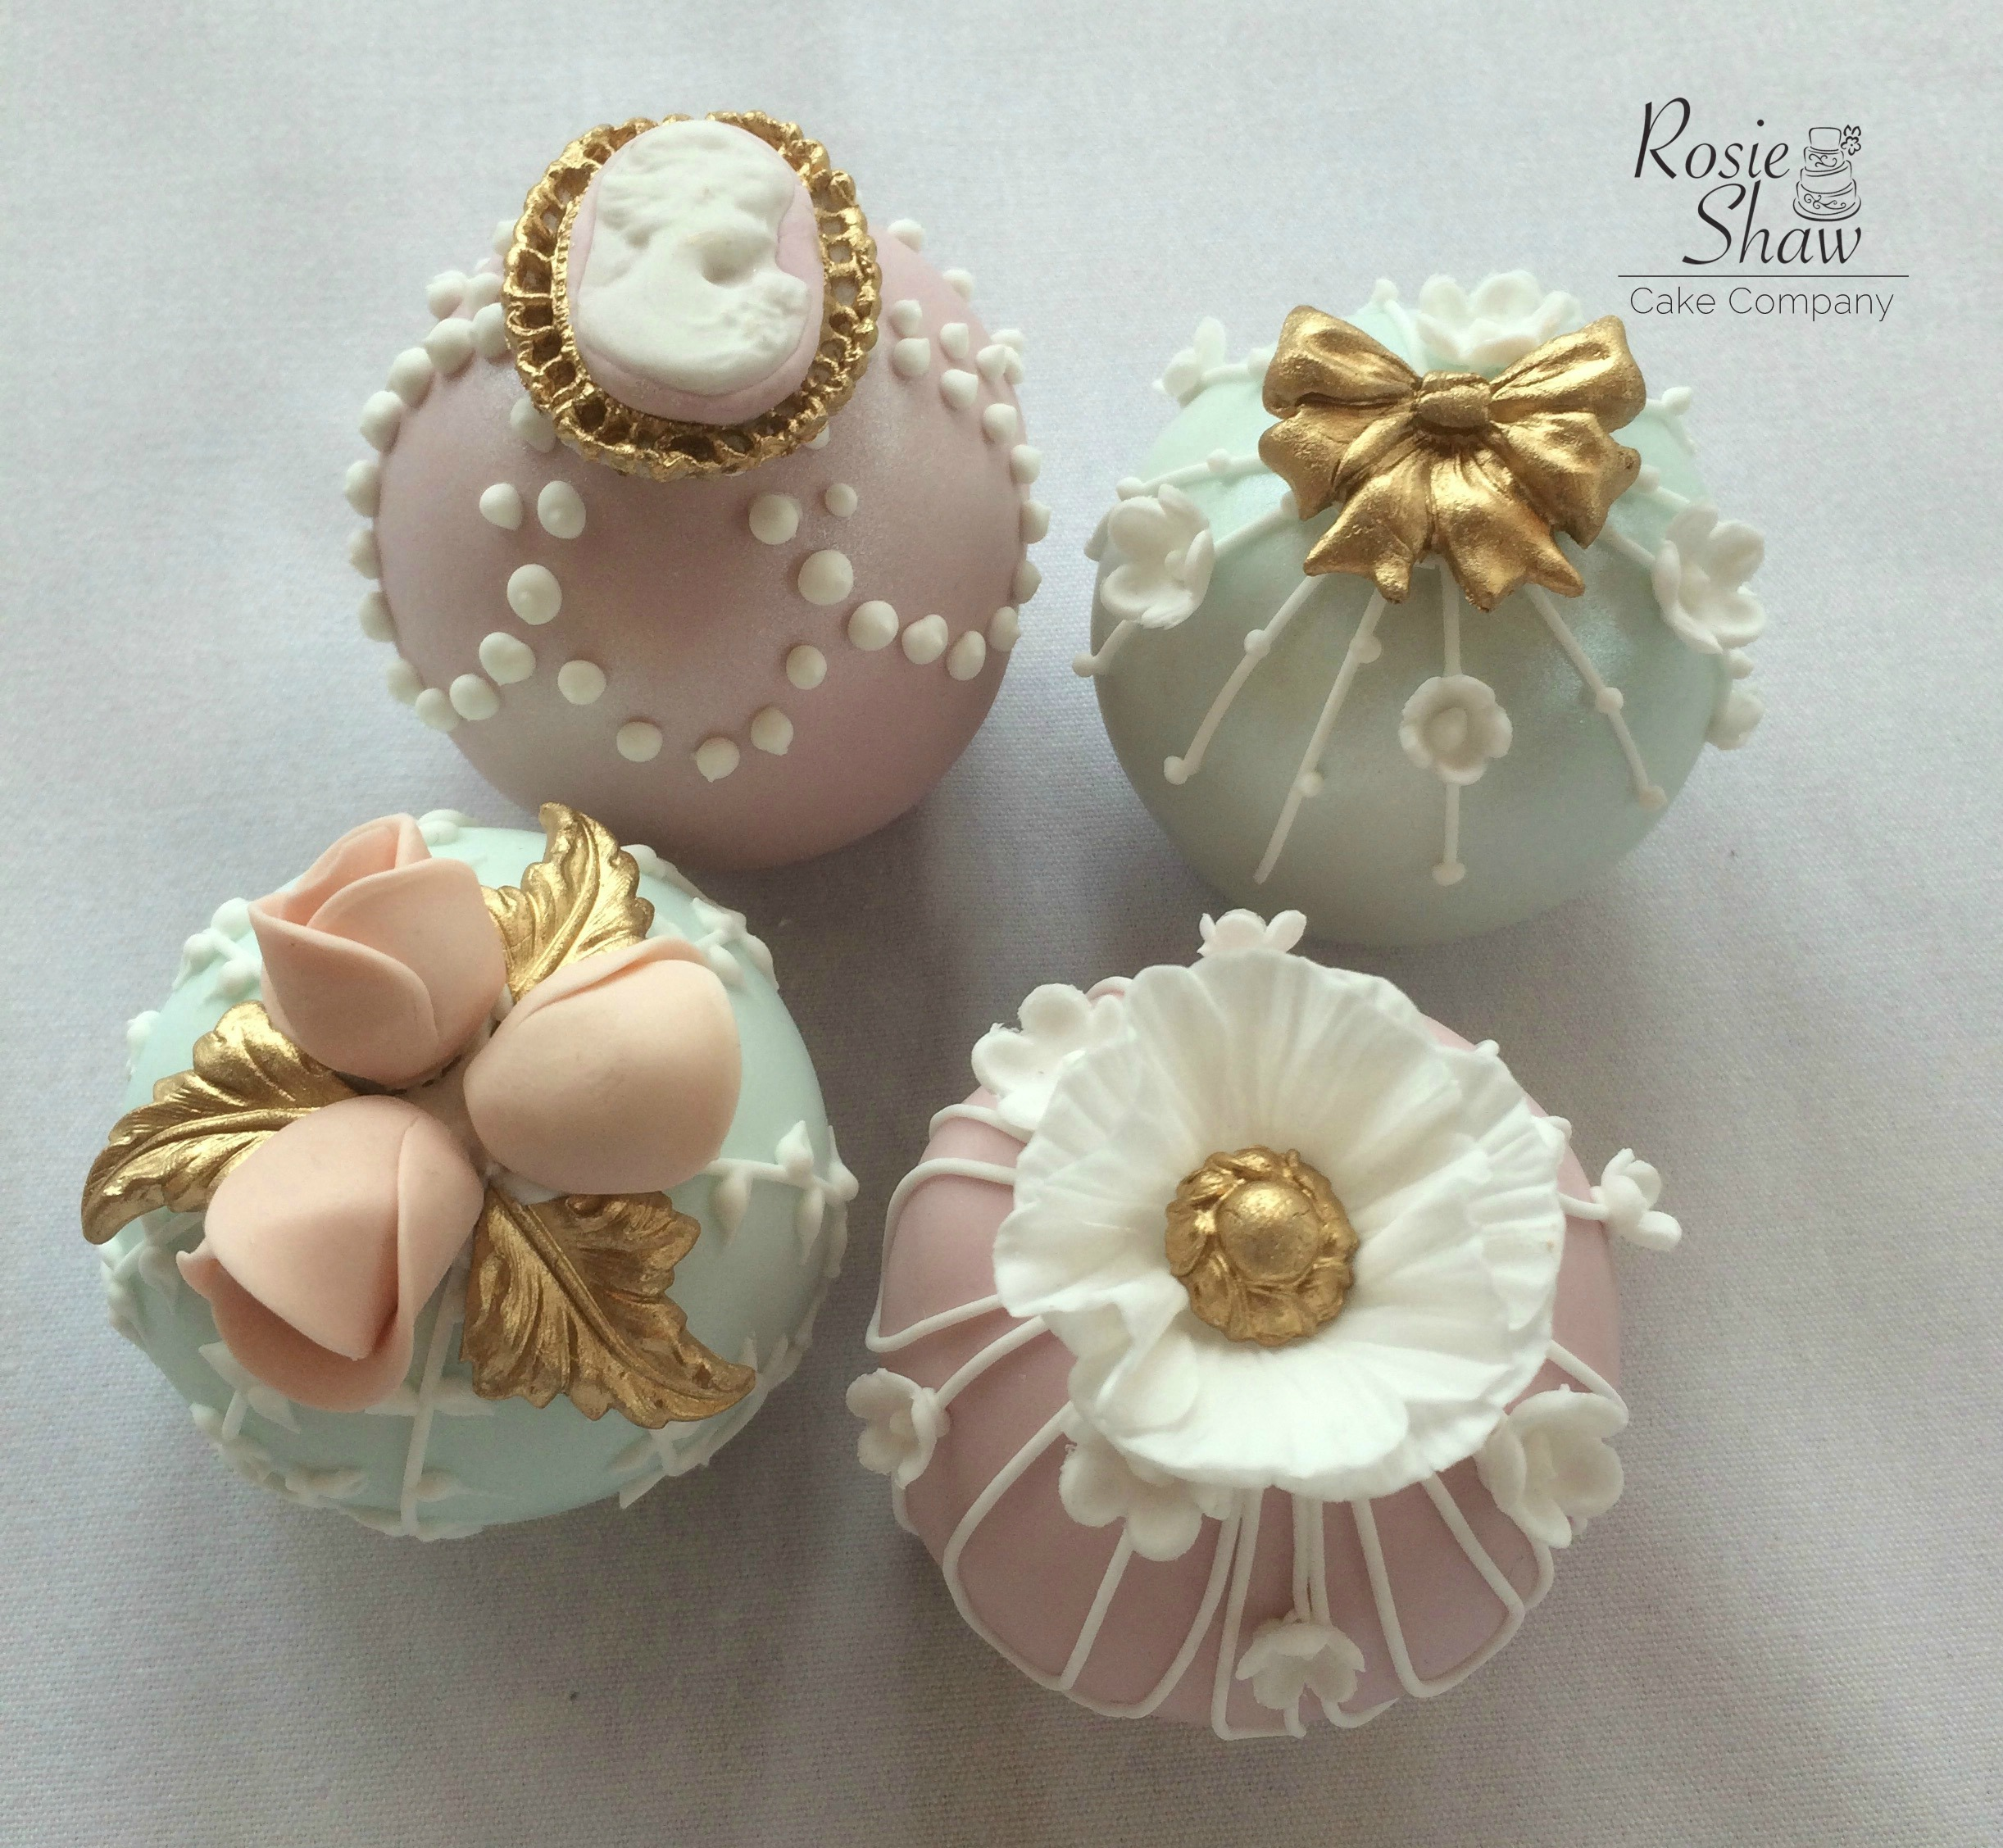 Sphere Cake Collection